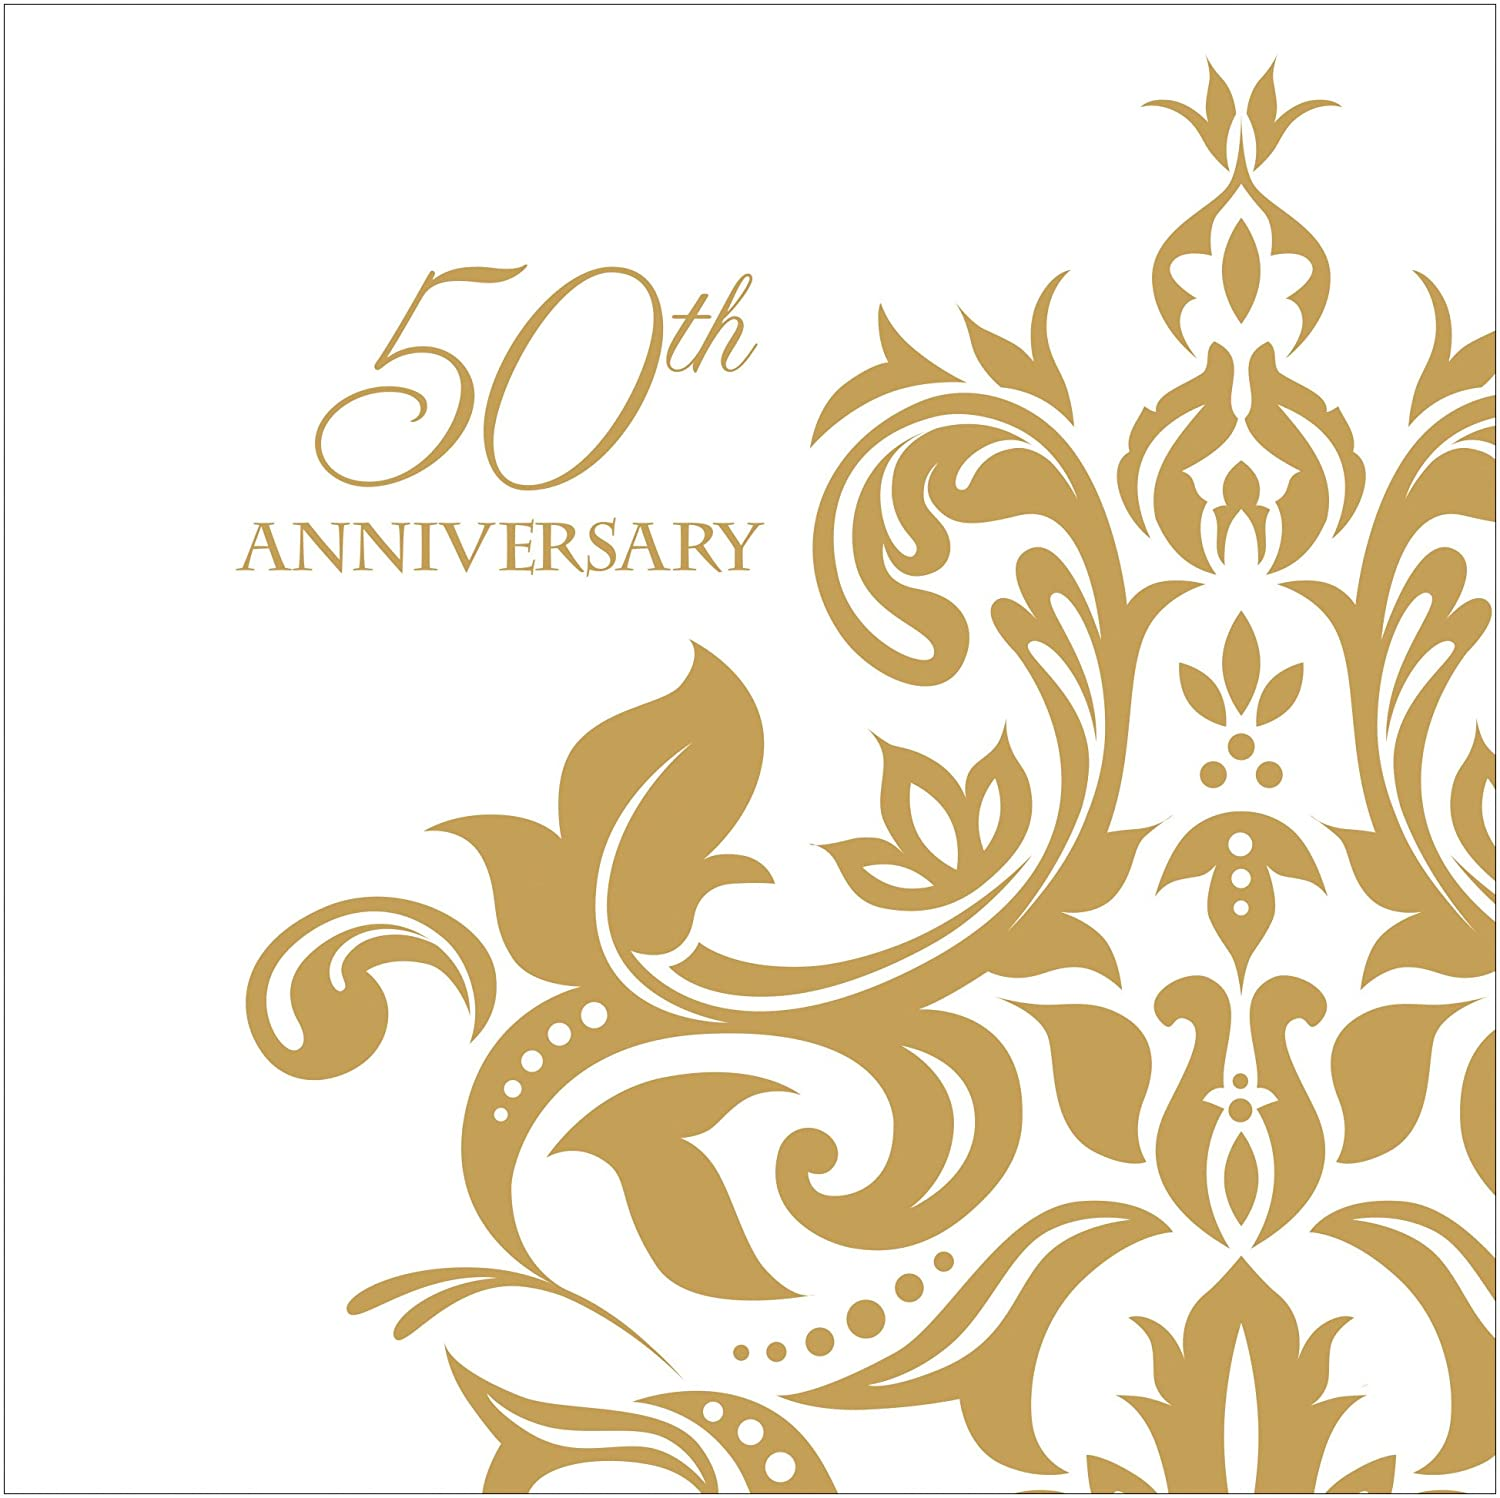 Creative Converting 36 Count 3 Ply 50th Anniversary Beverage Napkins, Golden 657398M